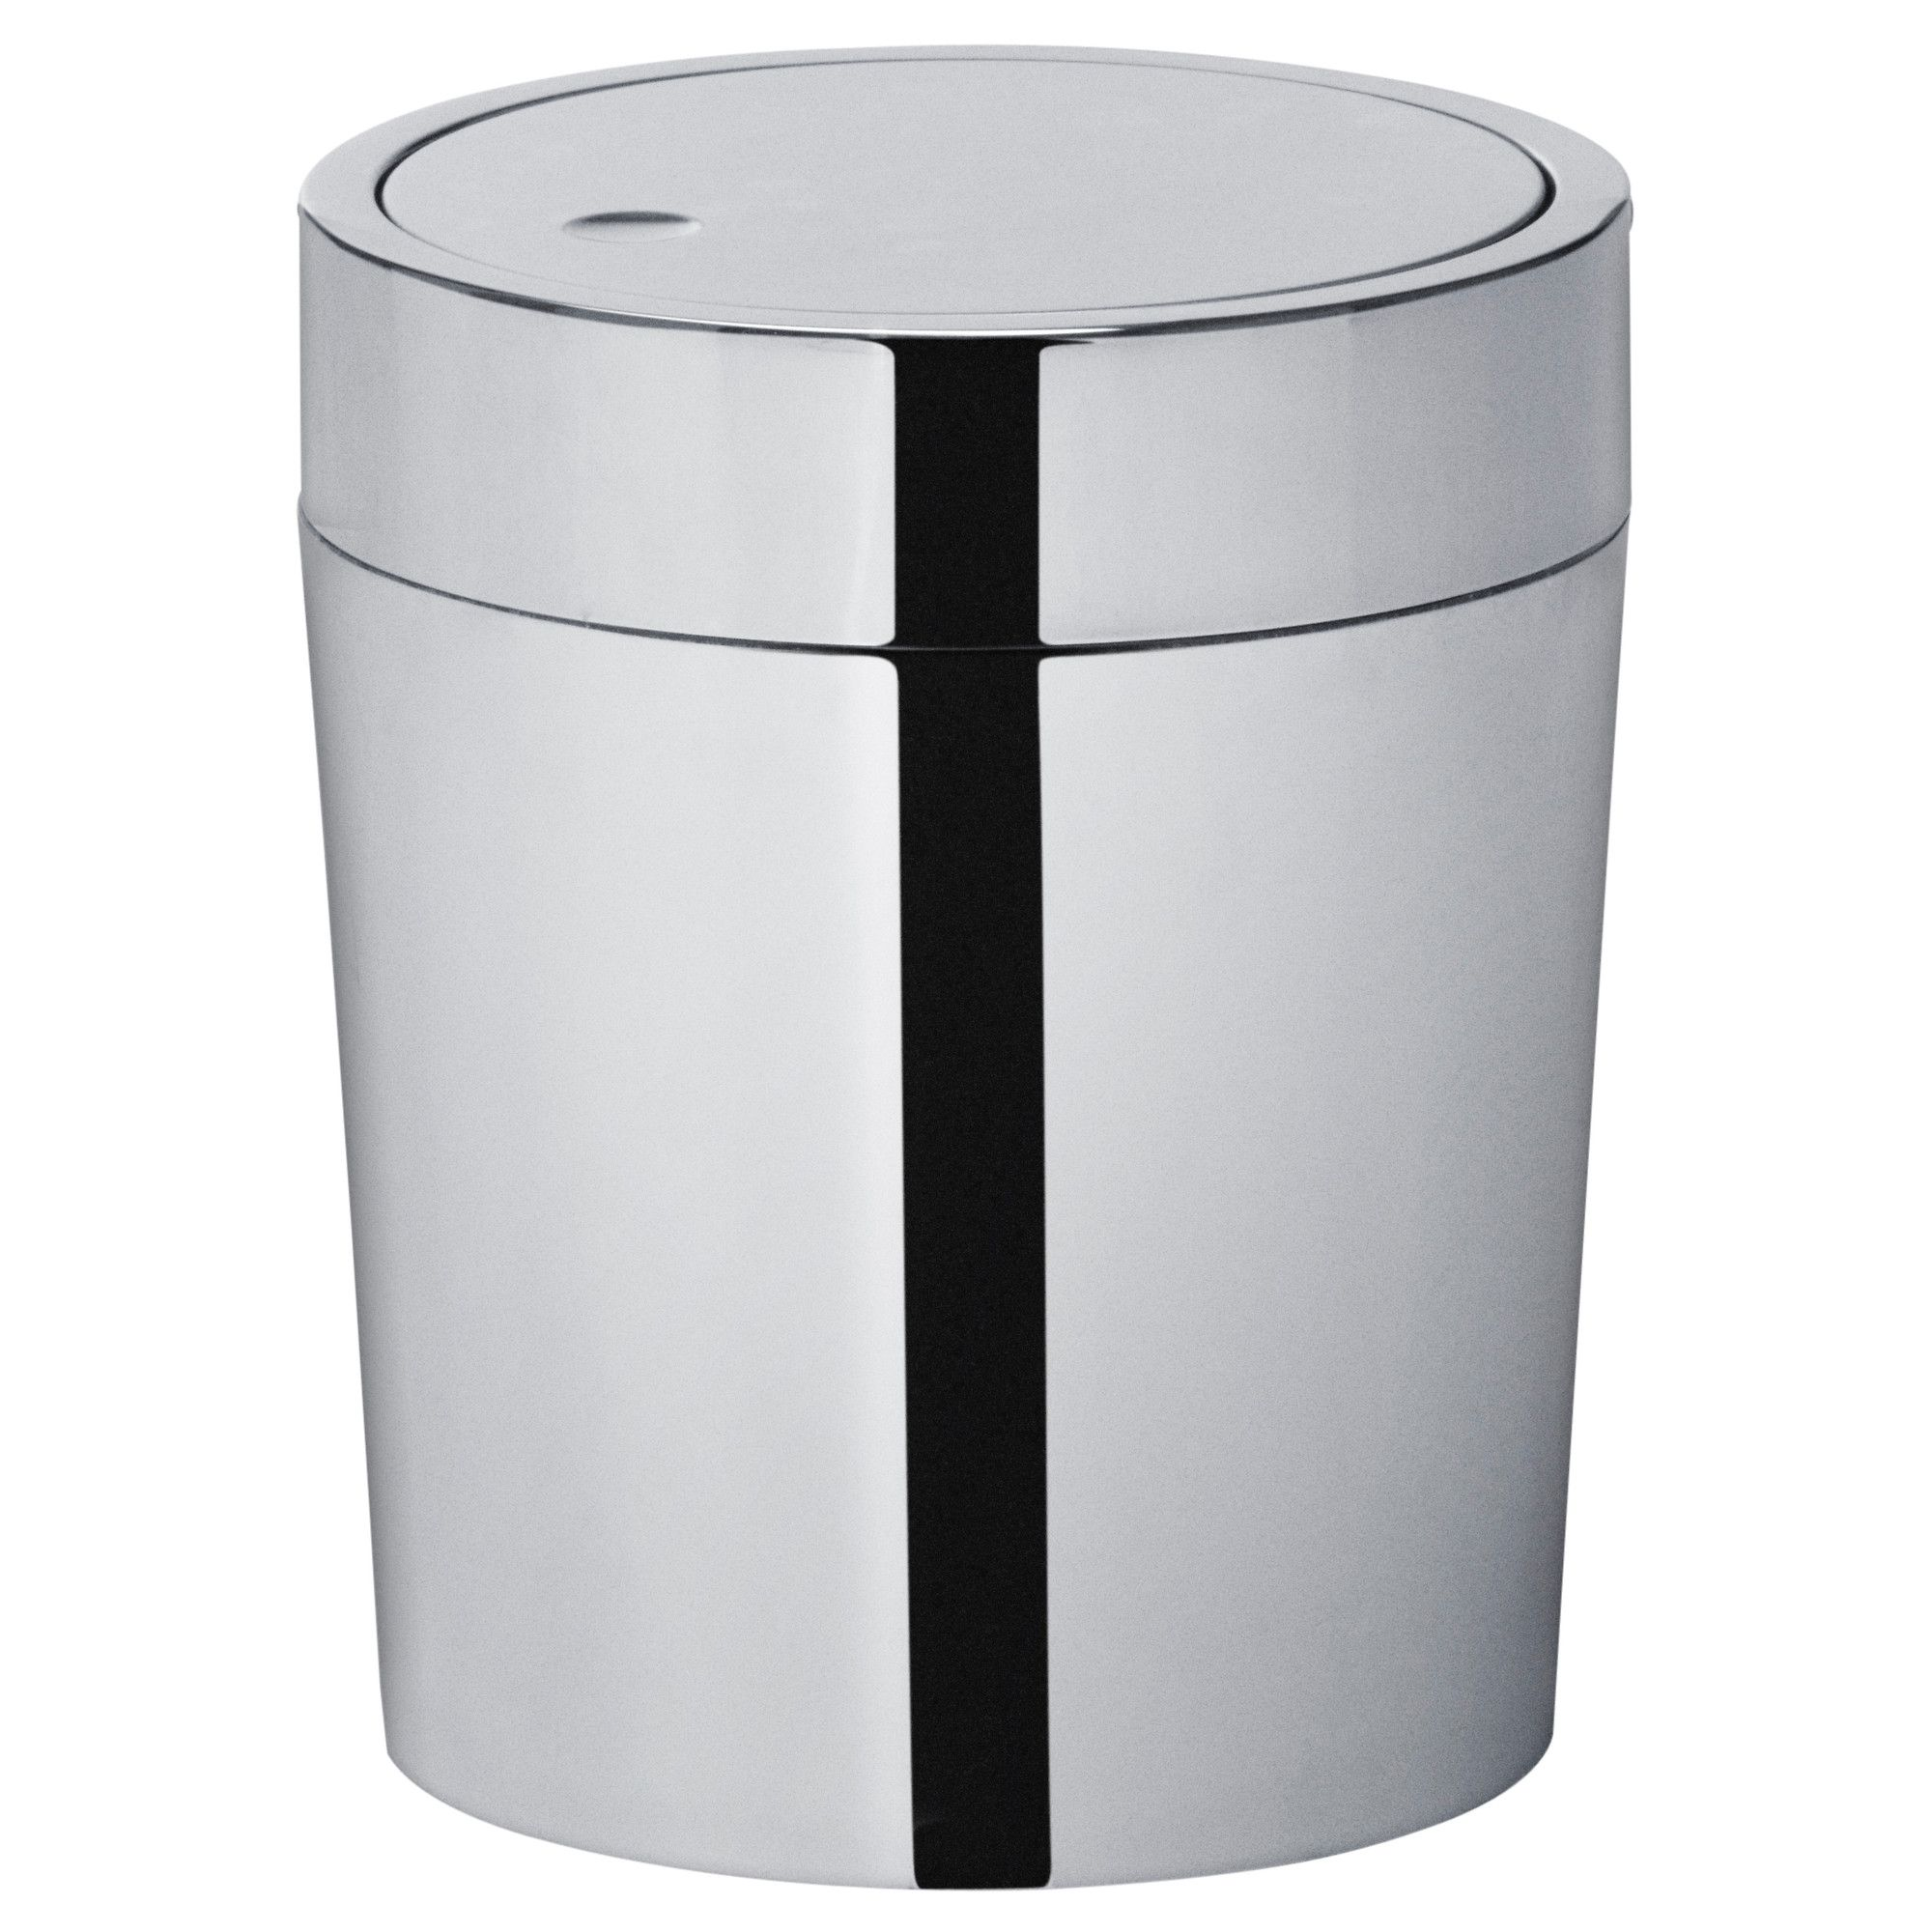 Savern Trash Can Stainless Steel 1 Gallon Ikea Bathroom Waste Basket Trash Can Ikea